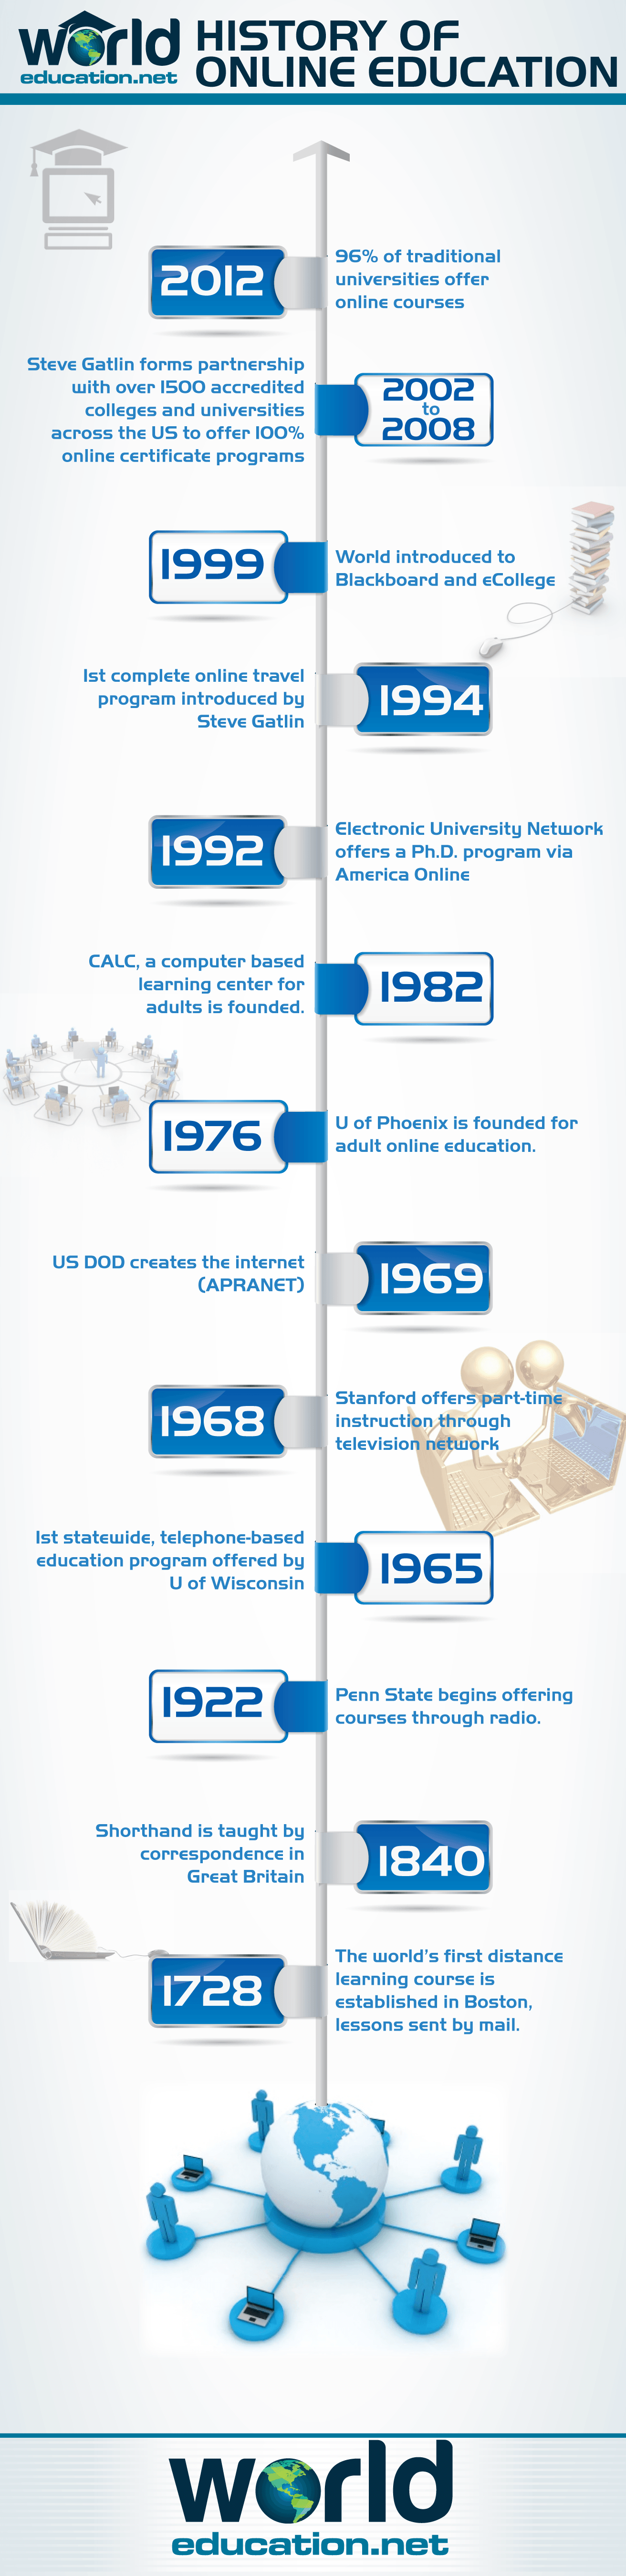 The History of Online Education Infographic